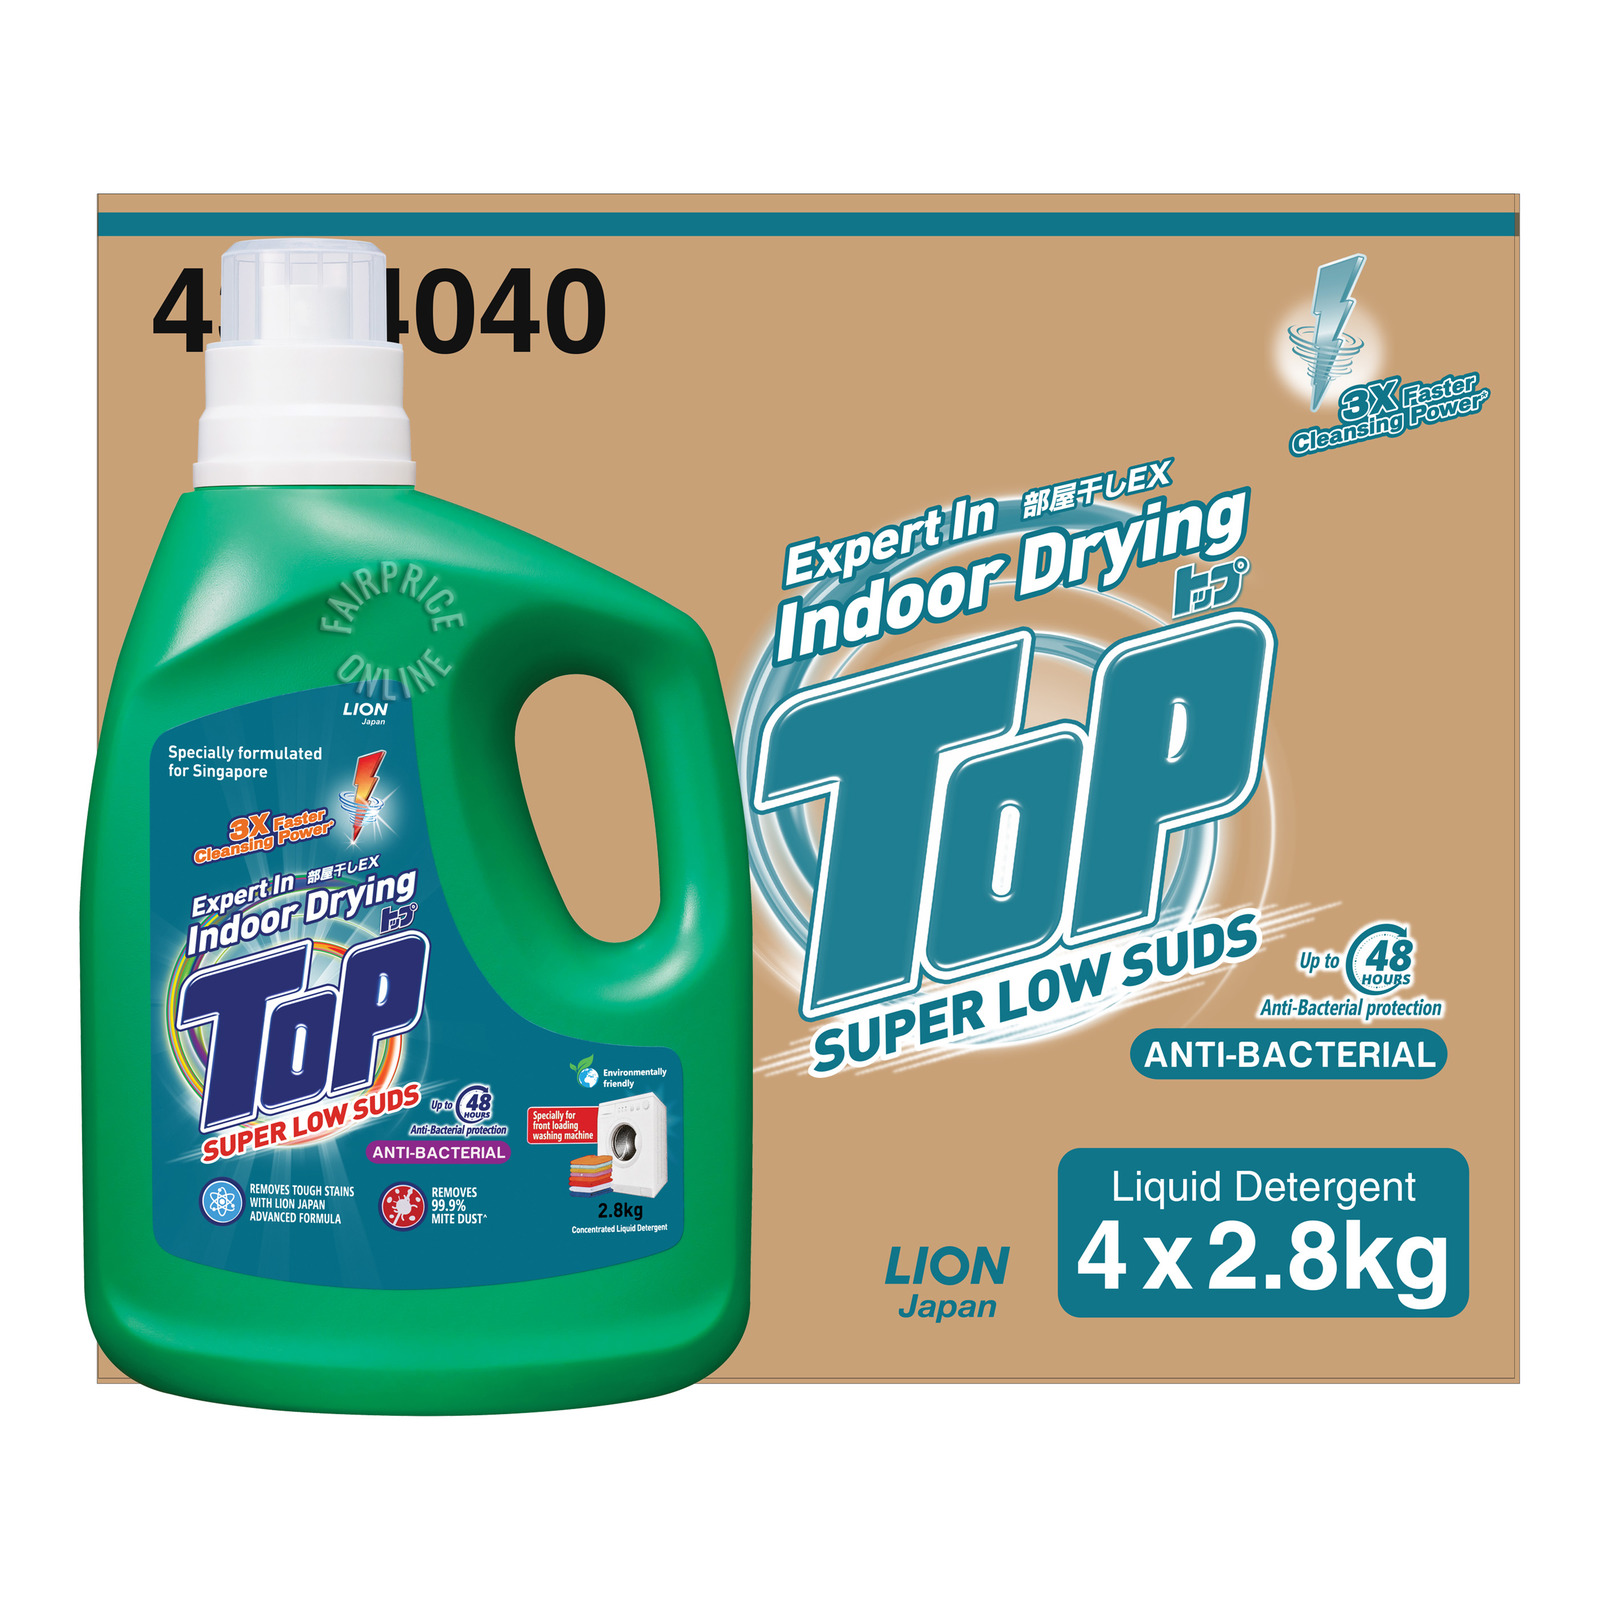 Top Concentrated Liquid Detergent Bottle - Anti-Bac